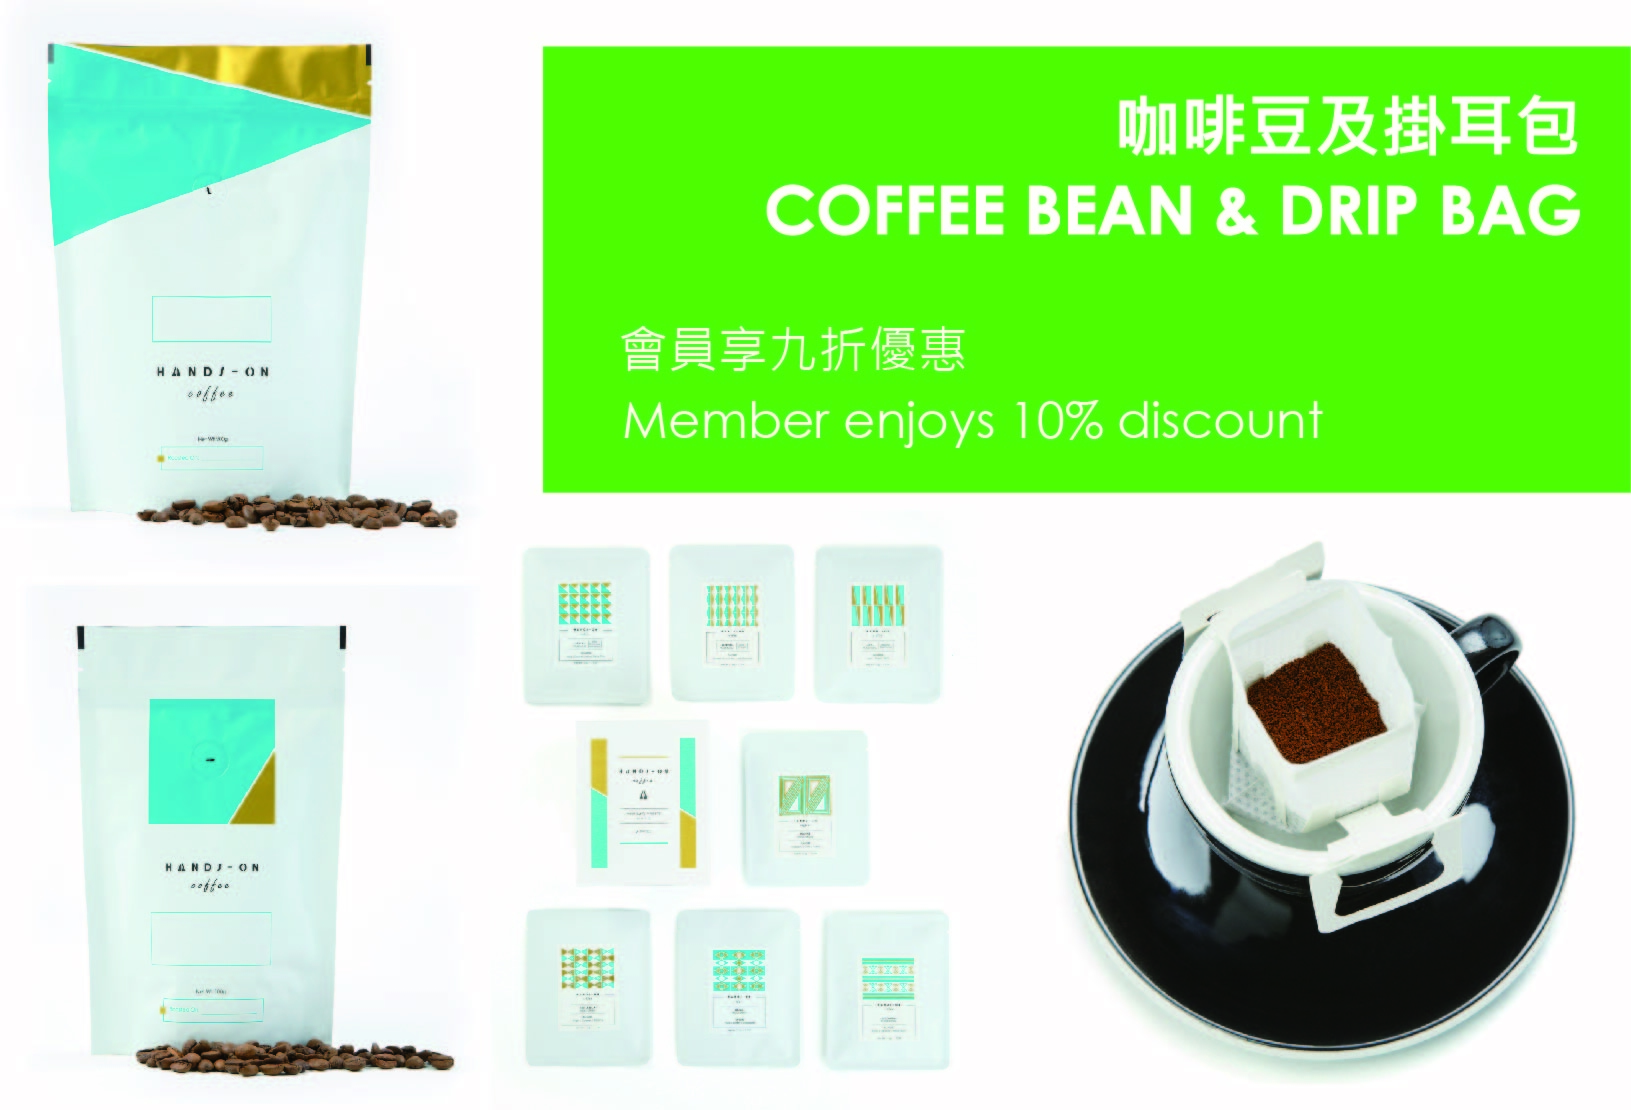 Coffee Bean & Drip Bag